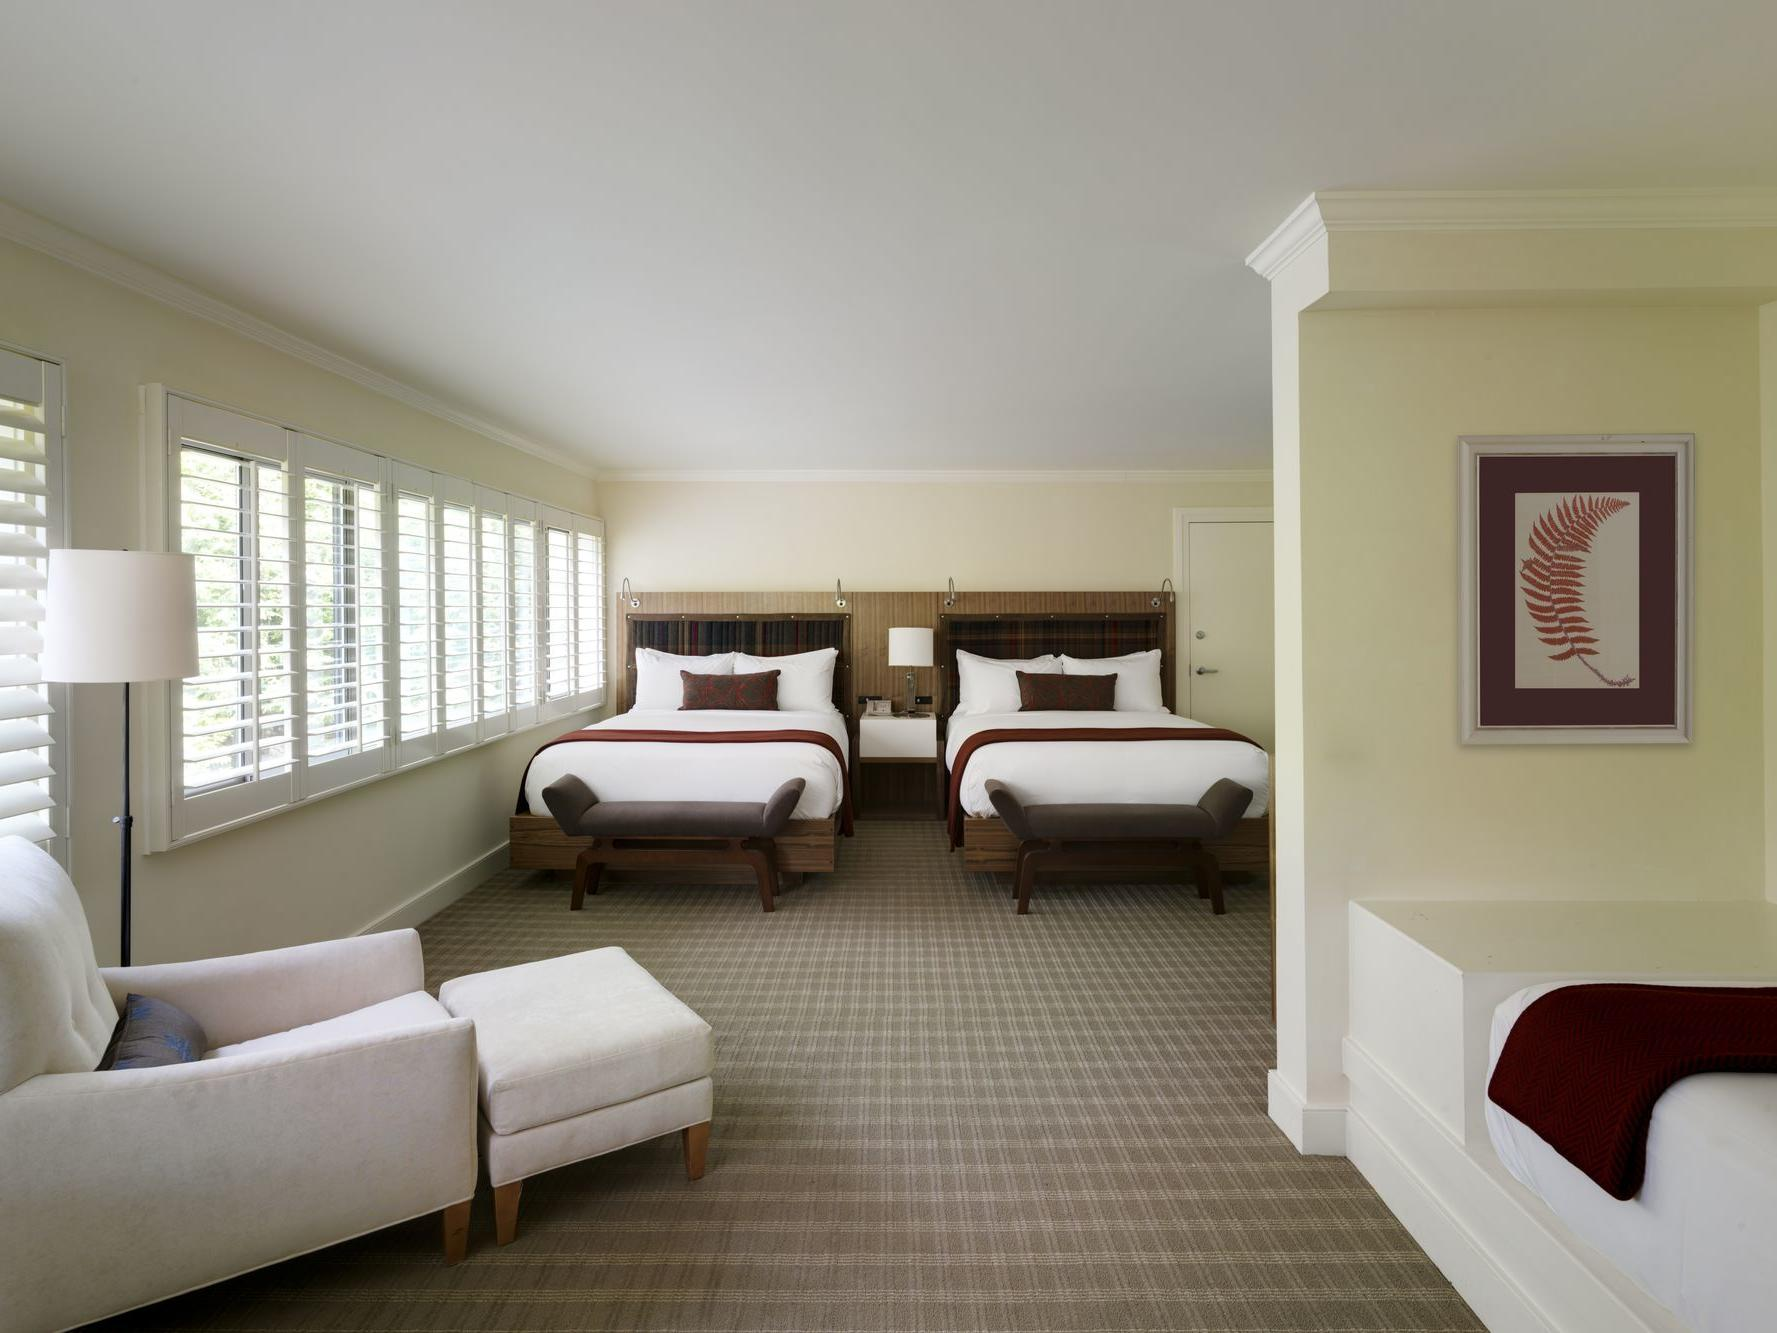 Deluxe hotel room with two queen bed